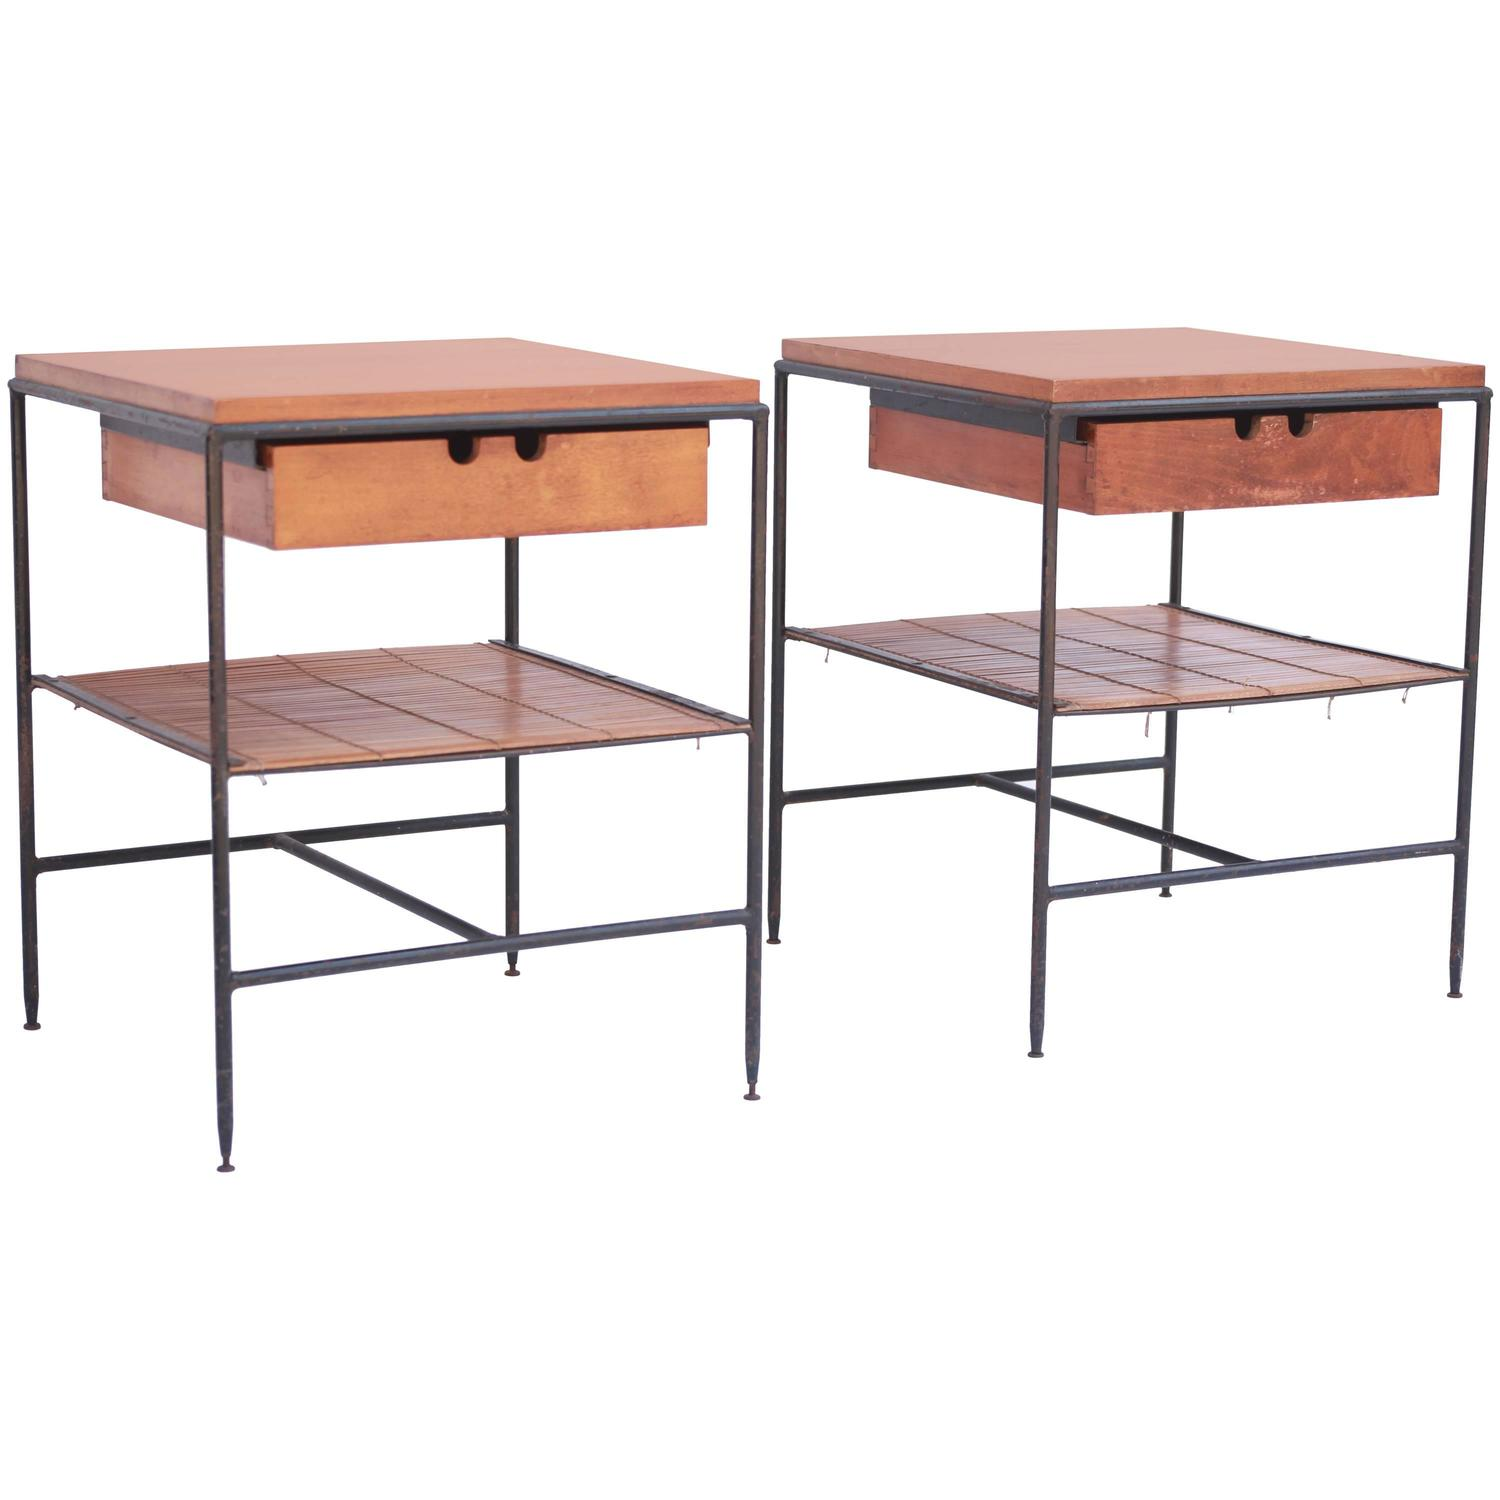 Paul McCobb Side Tables or Nightstands for Winchendon